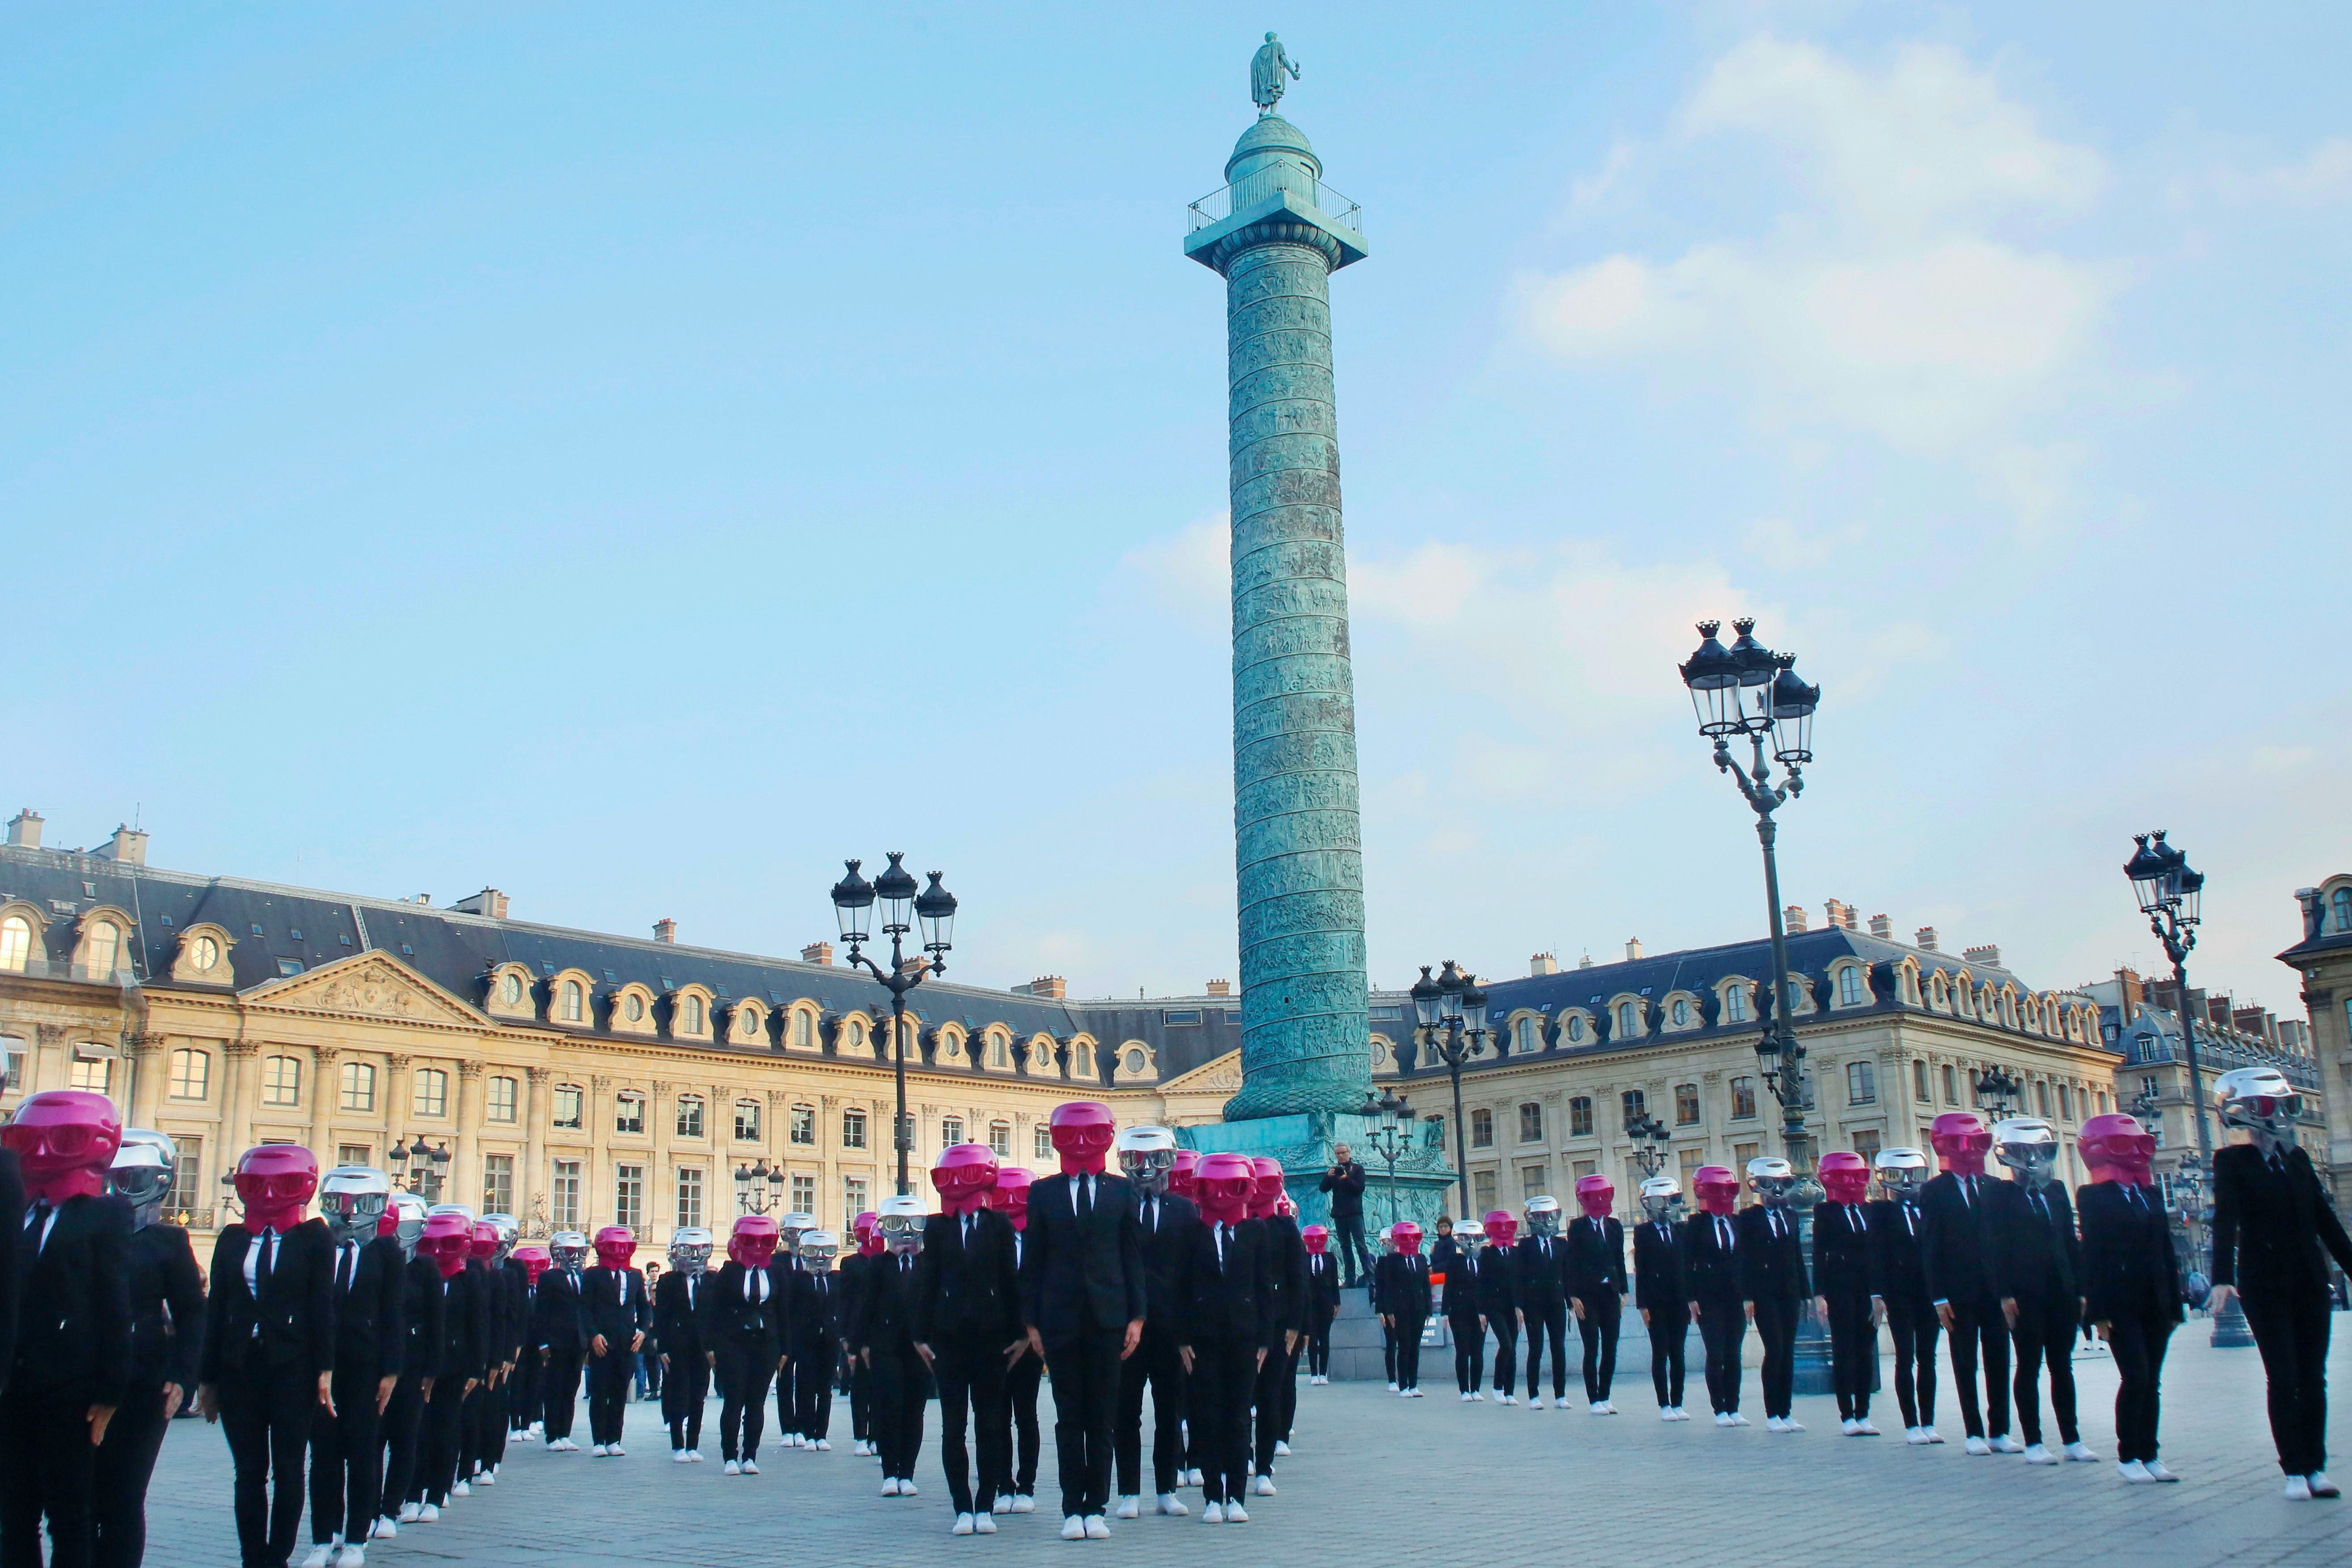 Performers dance wearing Karl Lagerfeld masks on Place Vendome to mark the launch of the Karl Lagerfeld + ModelCo makeup product line in Paris, FranceKarl Lagerfeld x ModelCo launch event, Paris, France - 15 May 2018